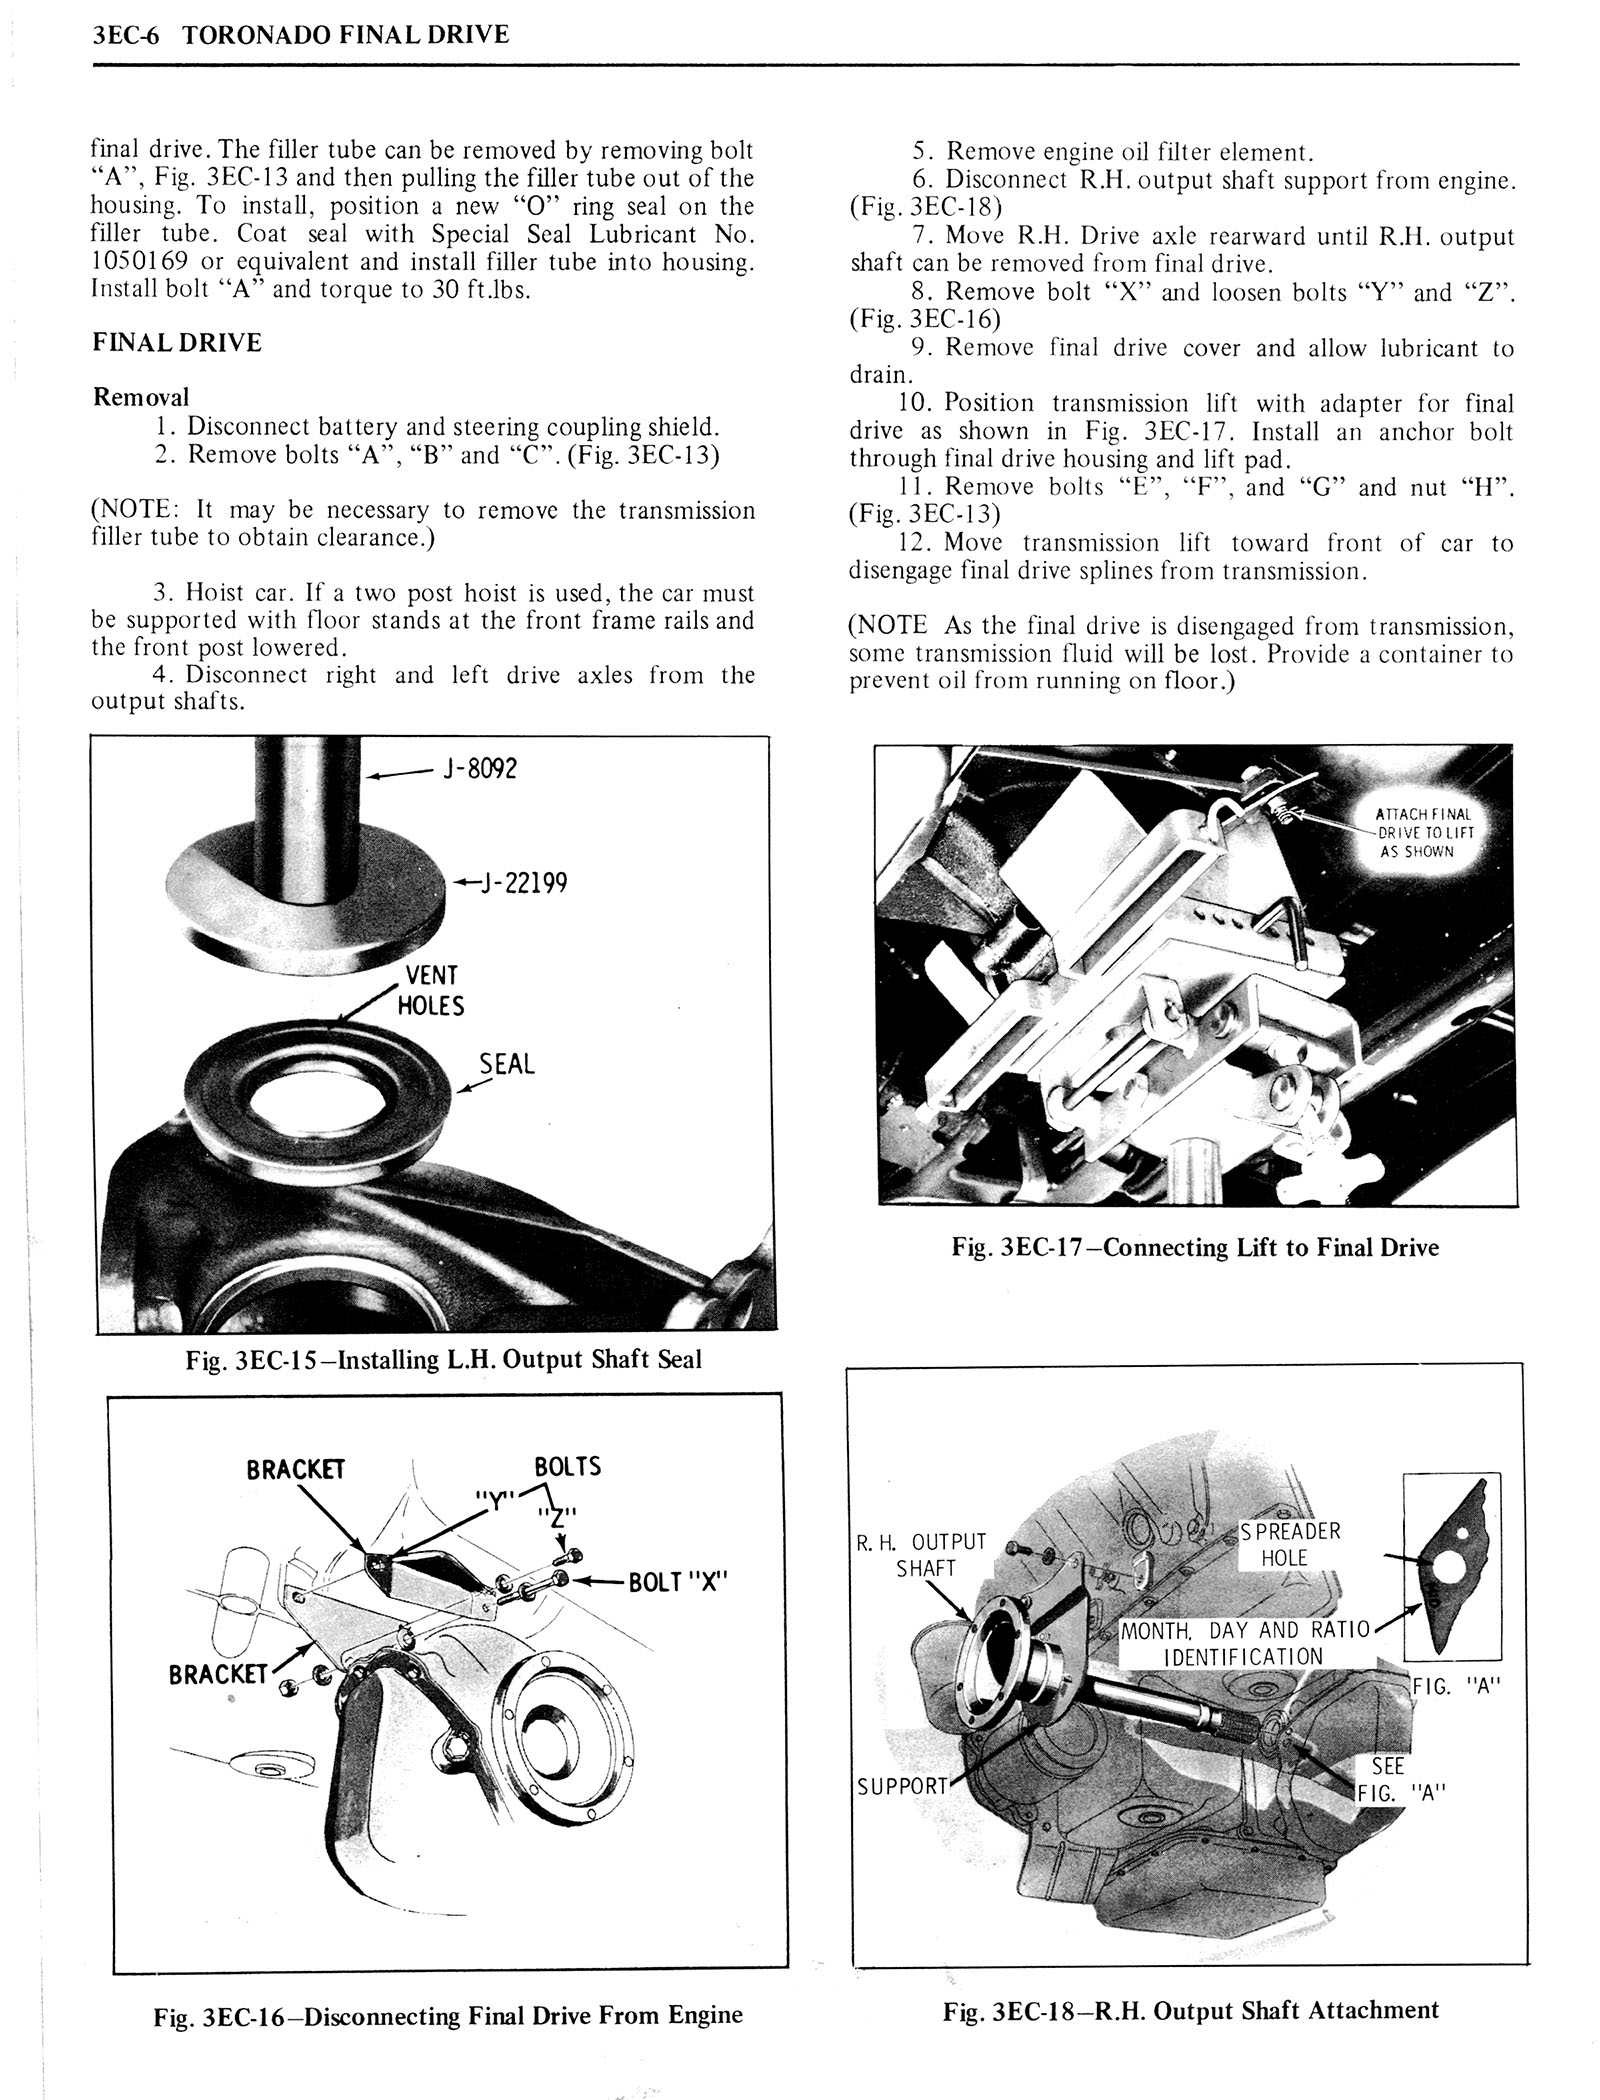 1976 Oldsmobile Service Manual page 242 of 1390